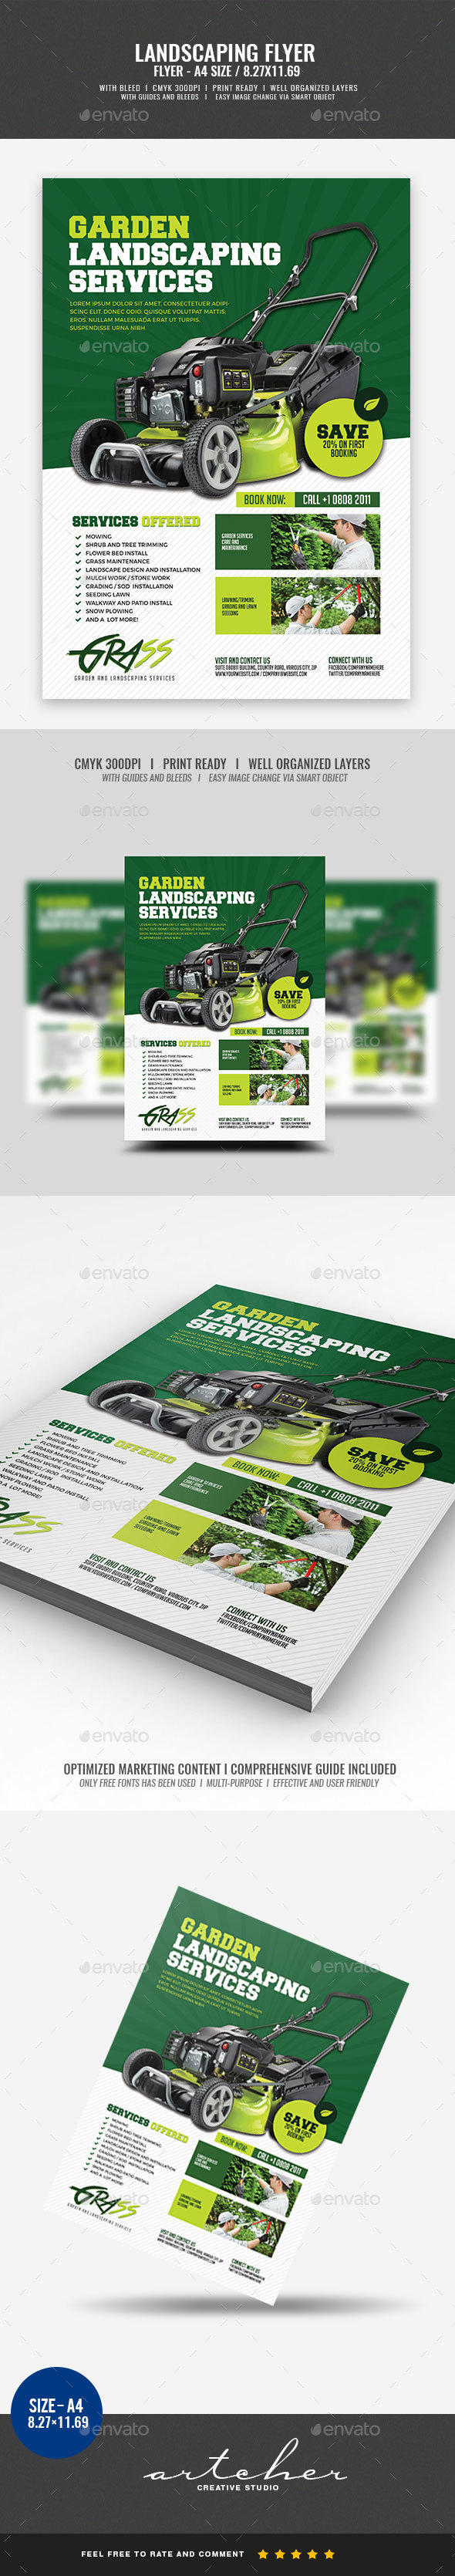 Landscaping Flyer - Flyers Print Templates